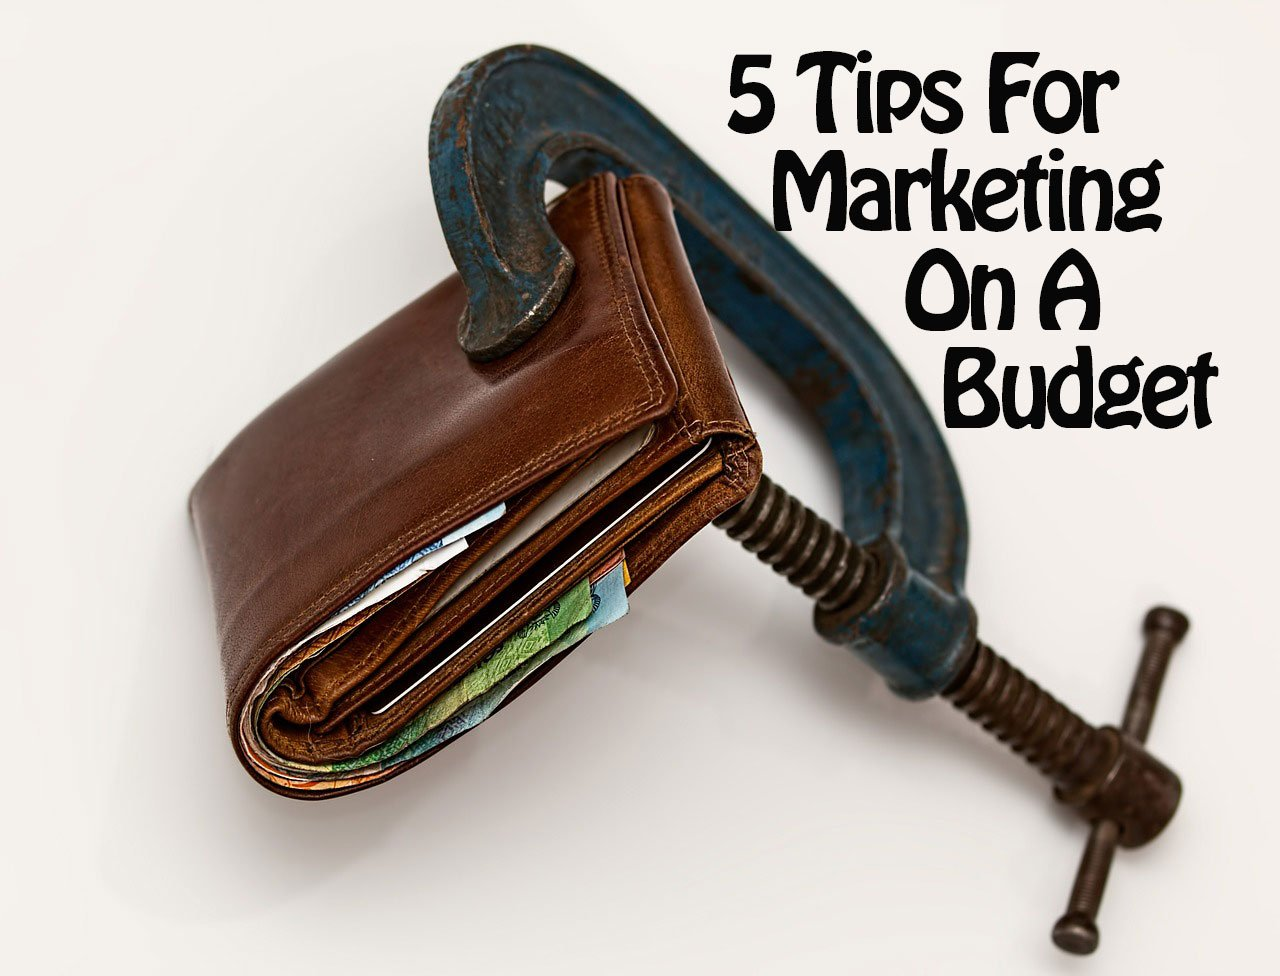 5 Tips For Marketing On A Budget